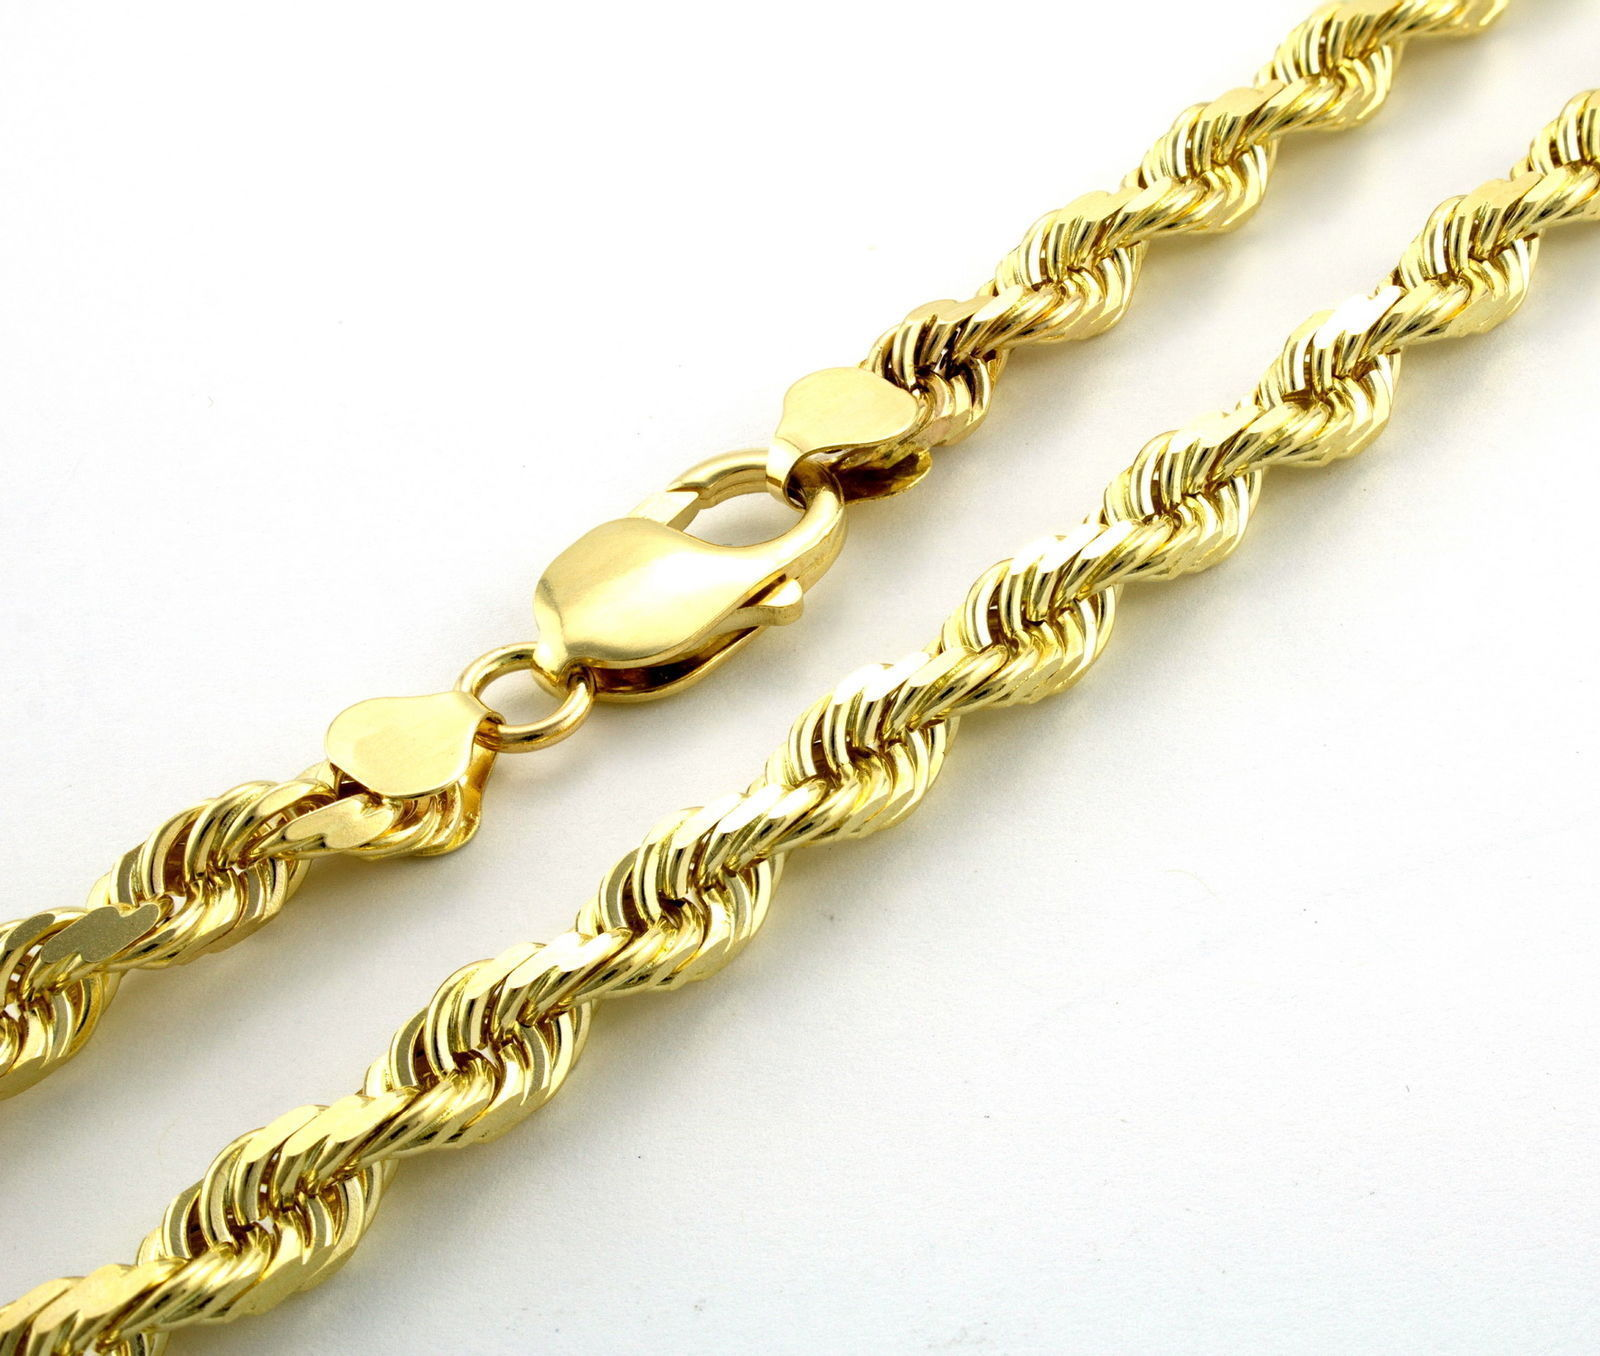 """14K Yellow Gold 5mm Thick Rope Link Chain Necklace 18"""" - Real gold image 2"""